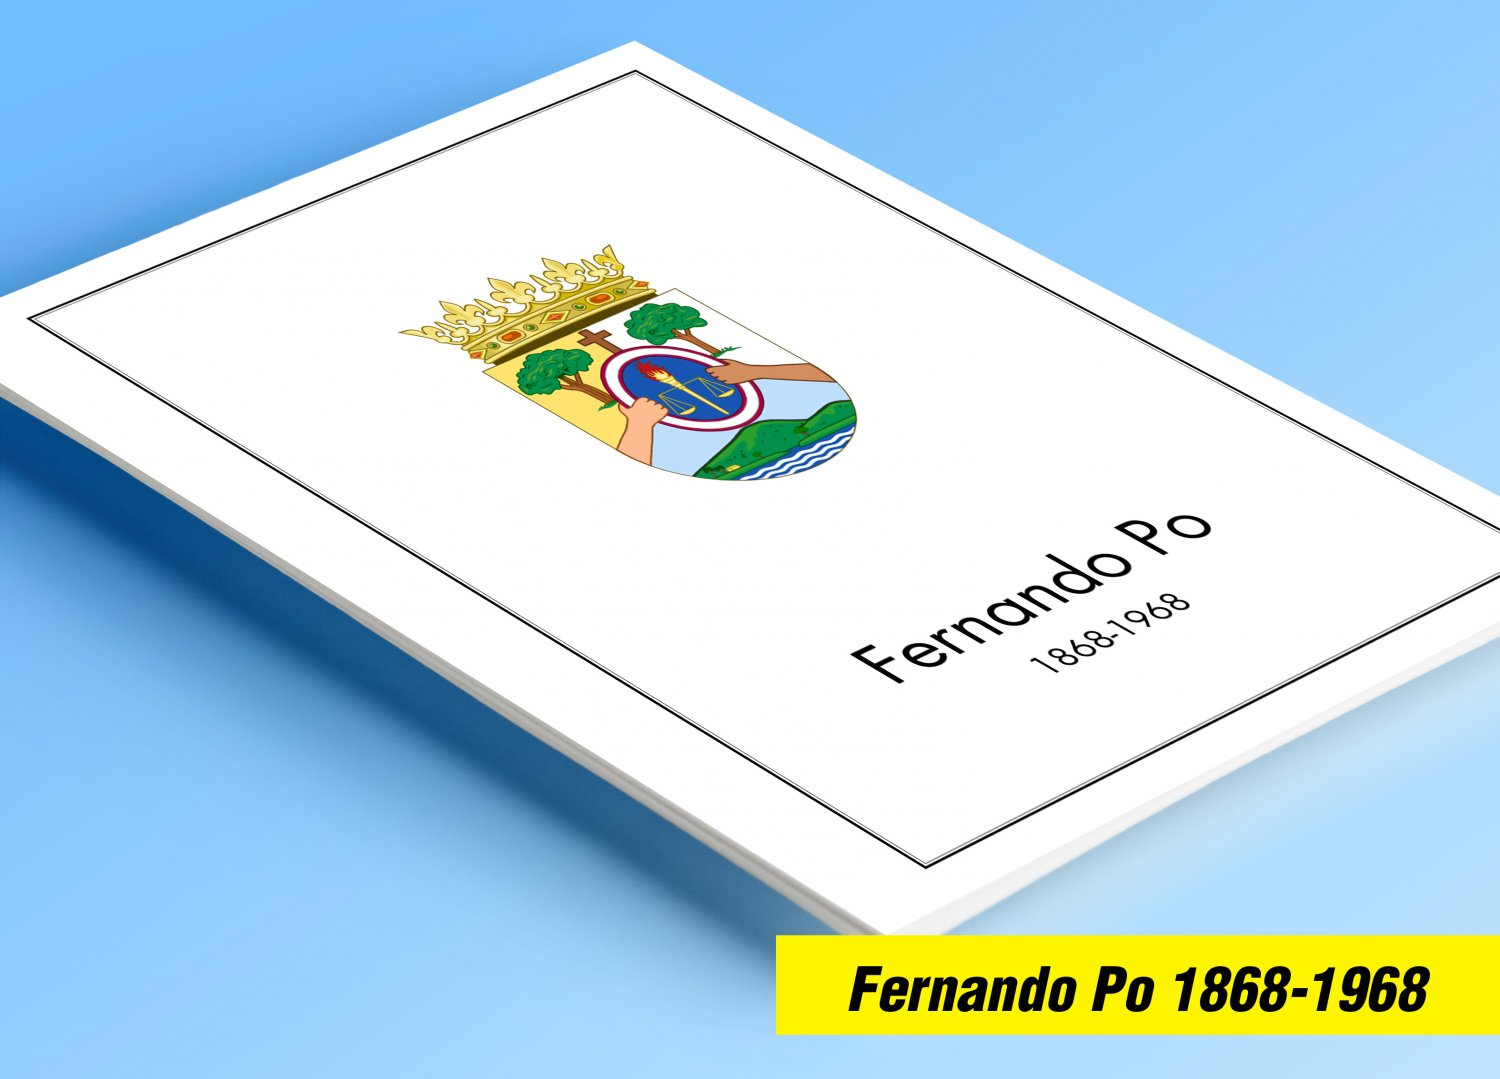 COLOR PRINTED FERNANDO PO 1868-1968 ALBUM PAGES (17 illustrated pages)